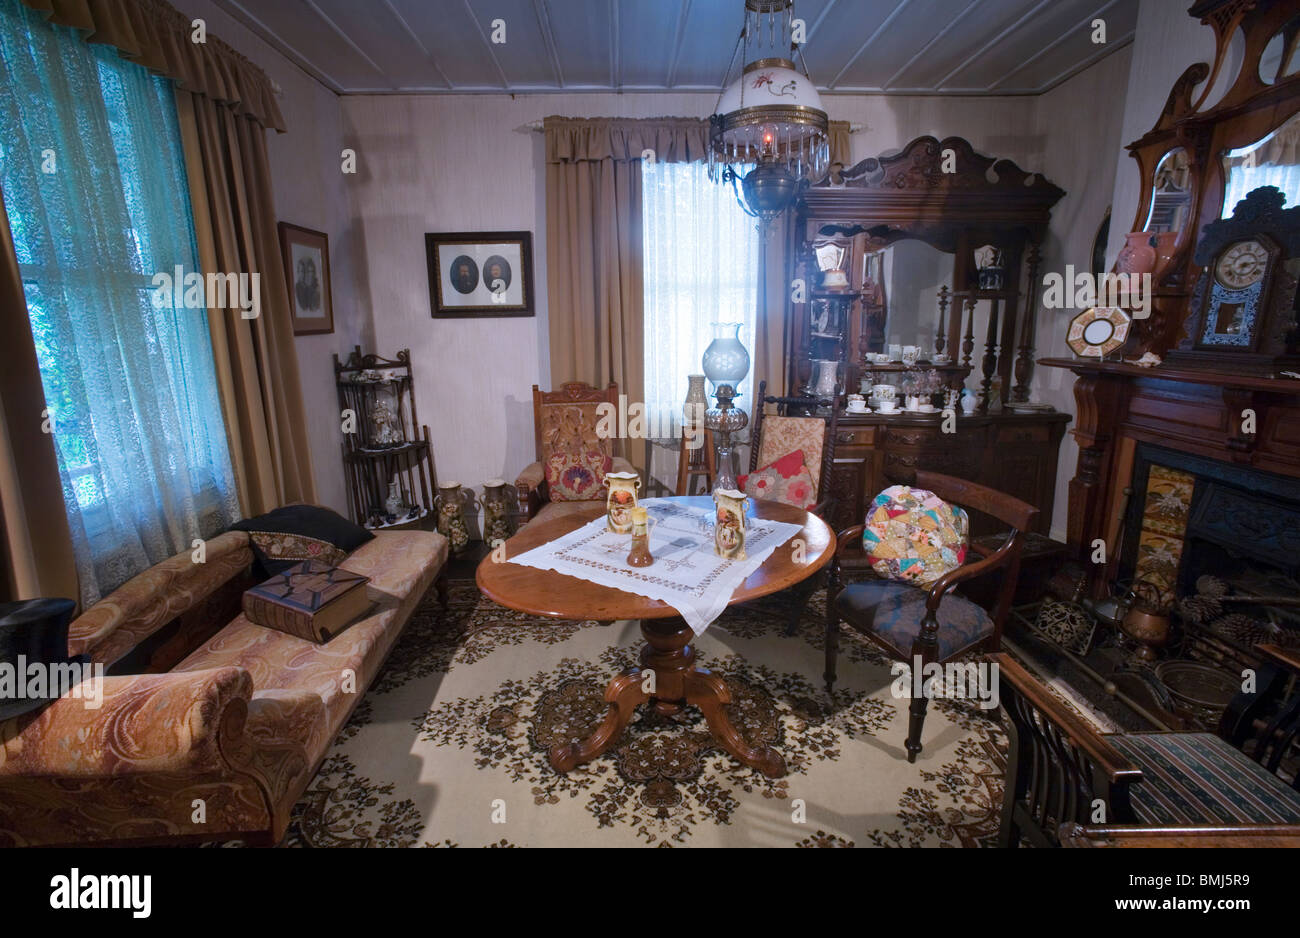 1800s Living Room Stock Photos & 1800s Living Room Stock